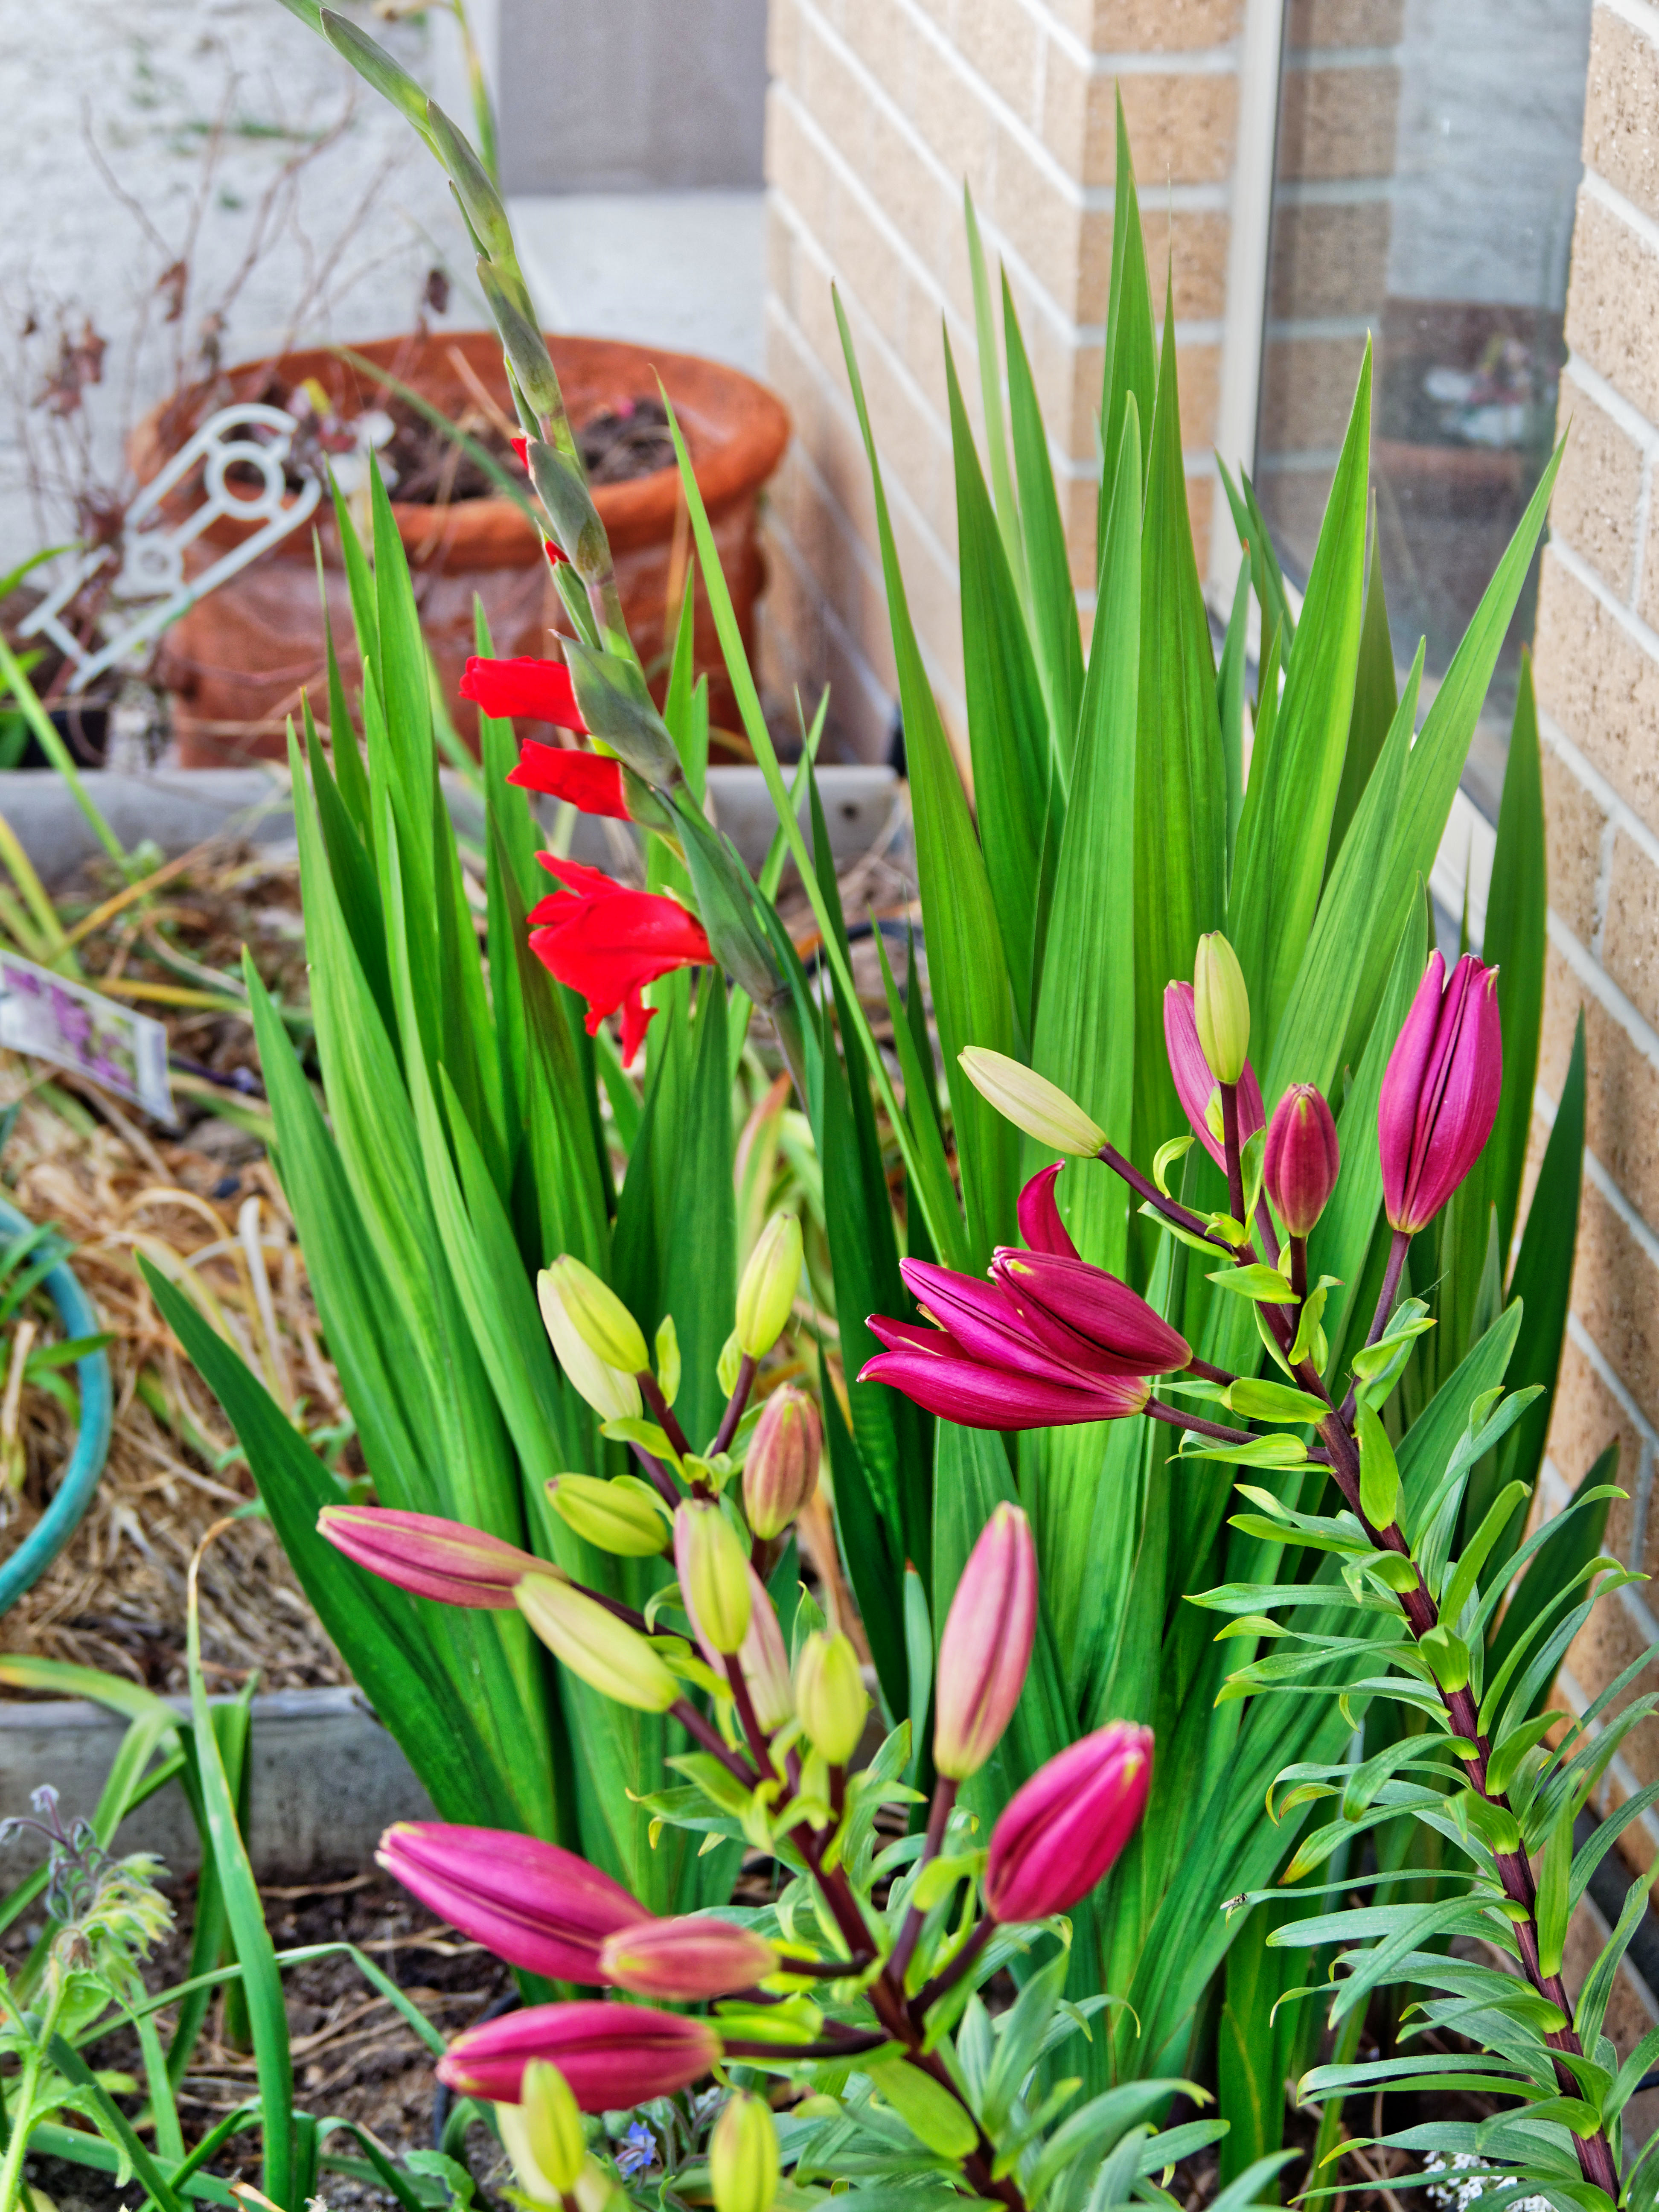 This should be Lilies-gladiolus-2.jpeg.  Is it missing?